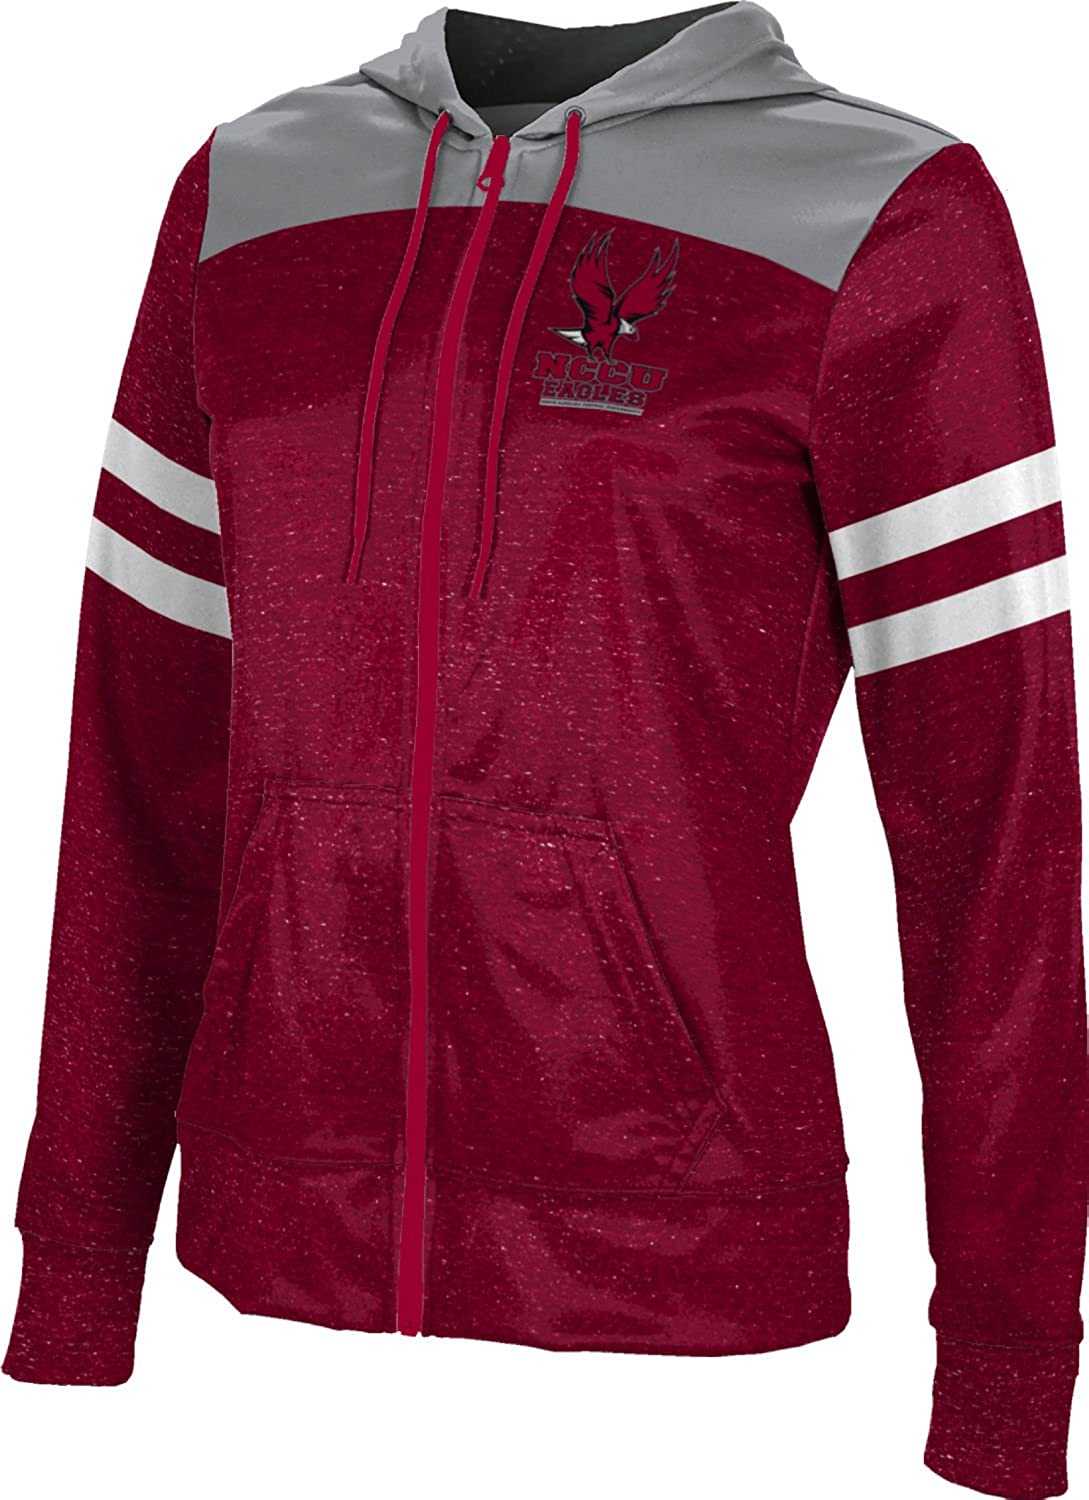 ProSphere North Carolina Central University Girls' Full Zip Hoodie - Gameday